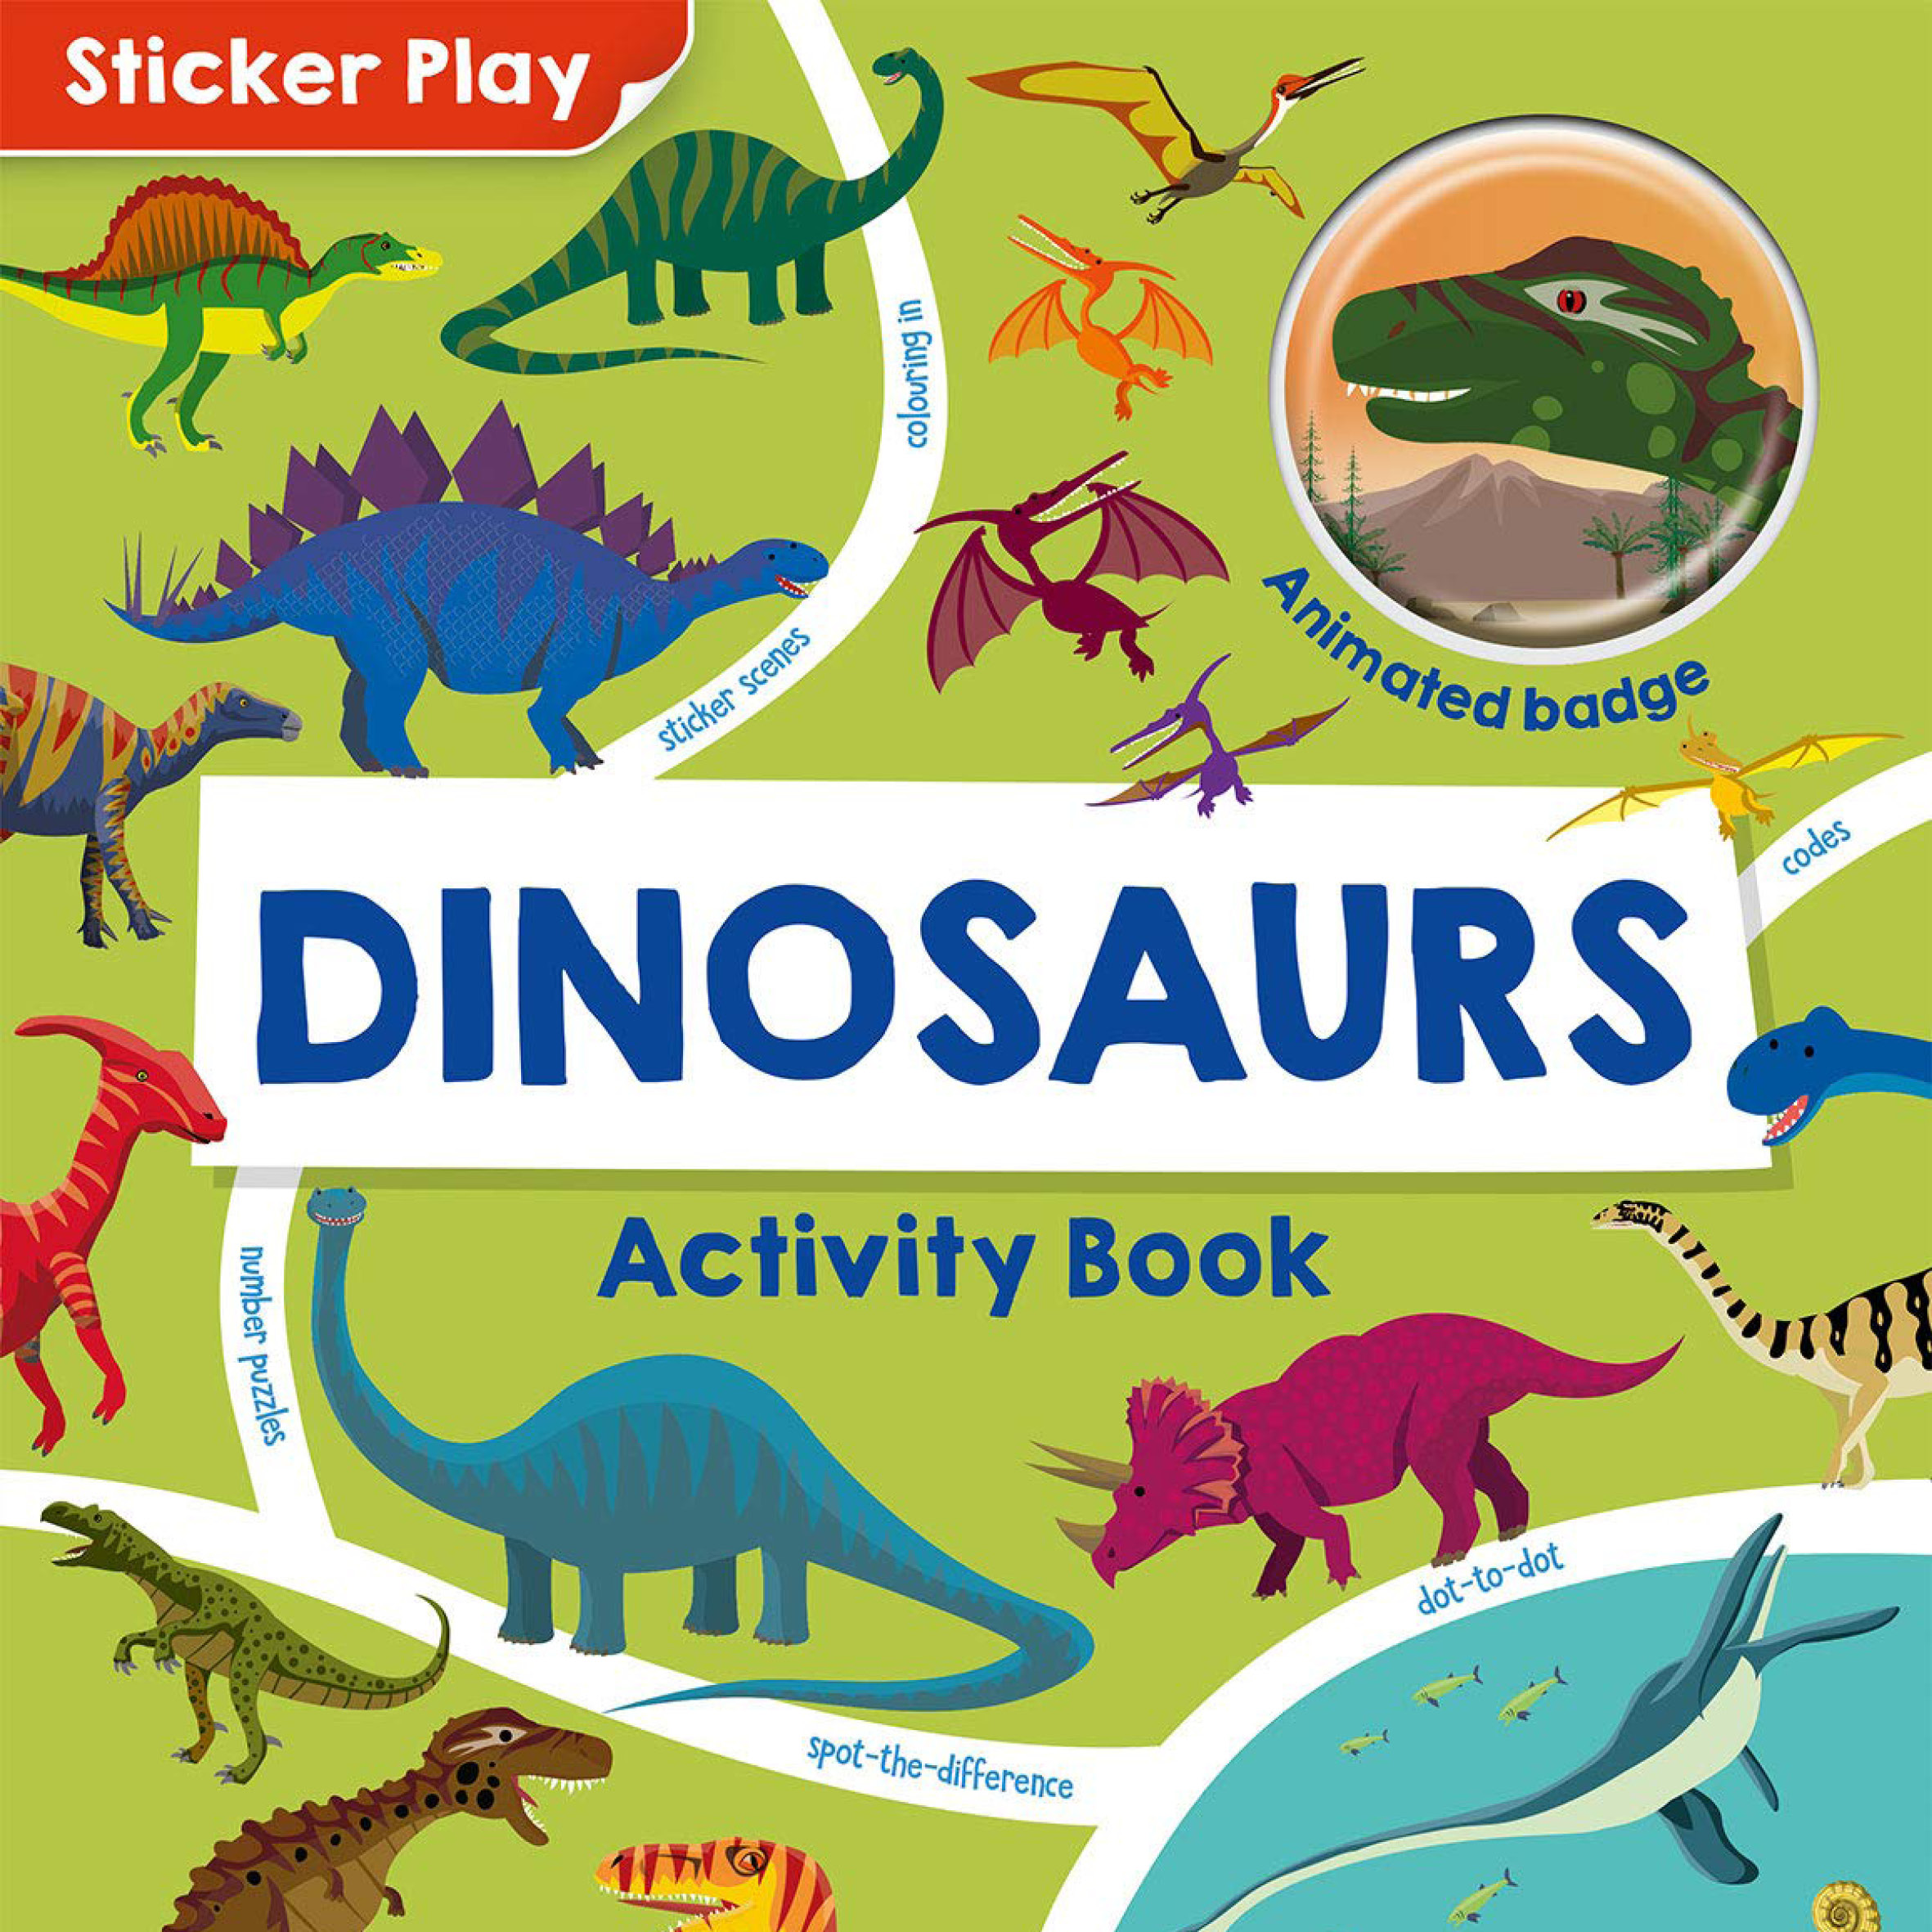 78 Dynamo Sticker Play DINOSAURS_THUMB